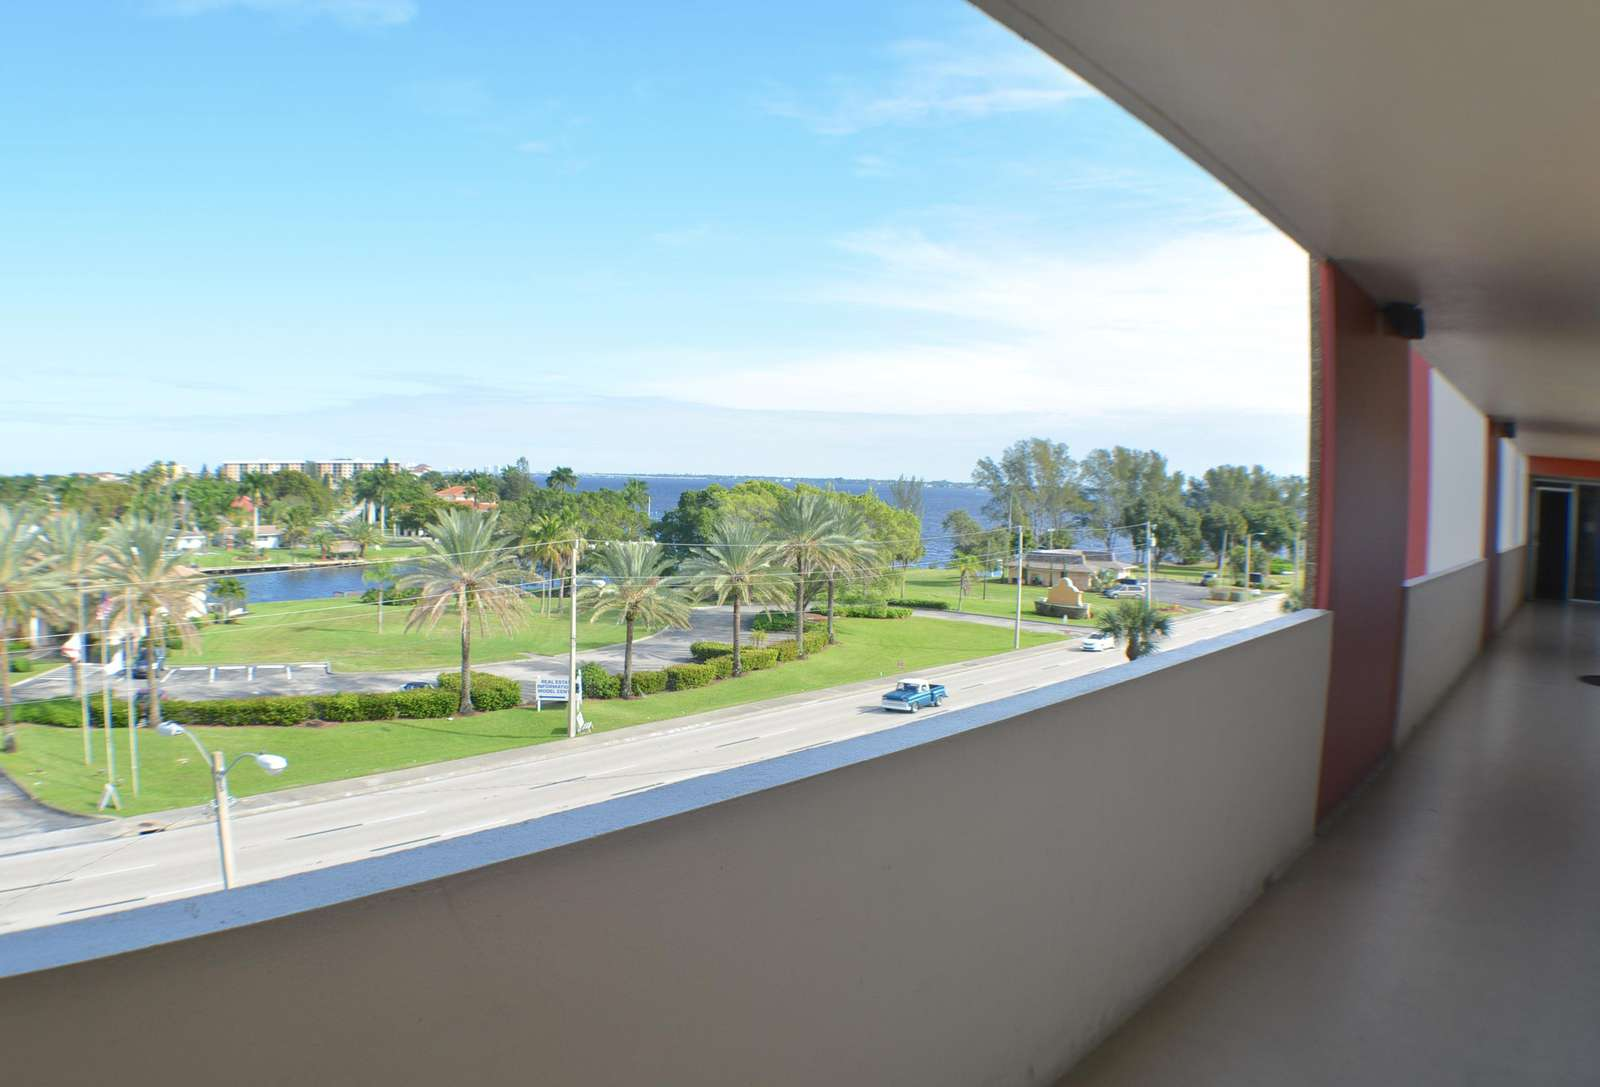 View from the breezeway